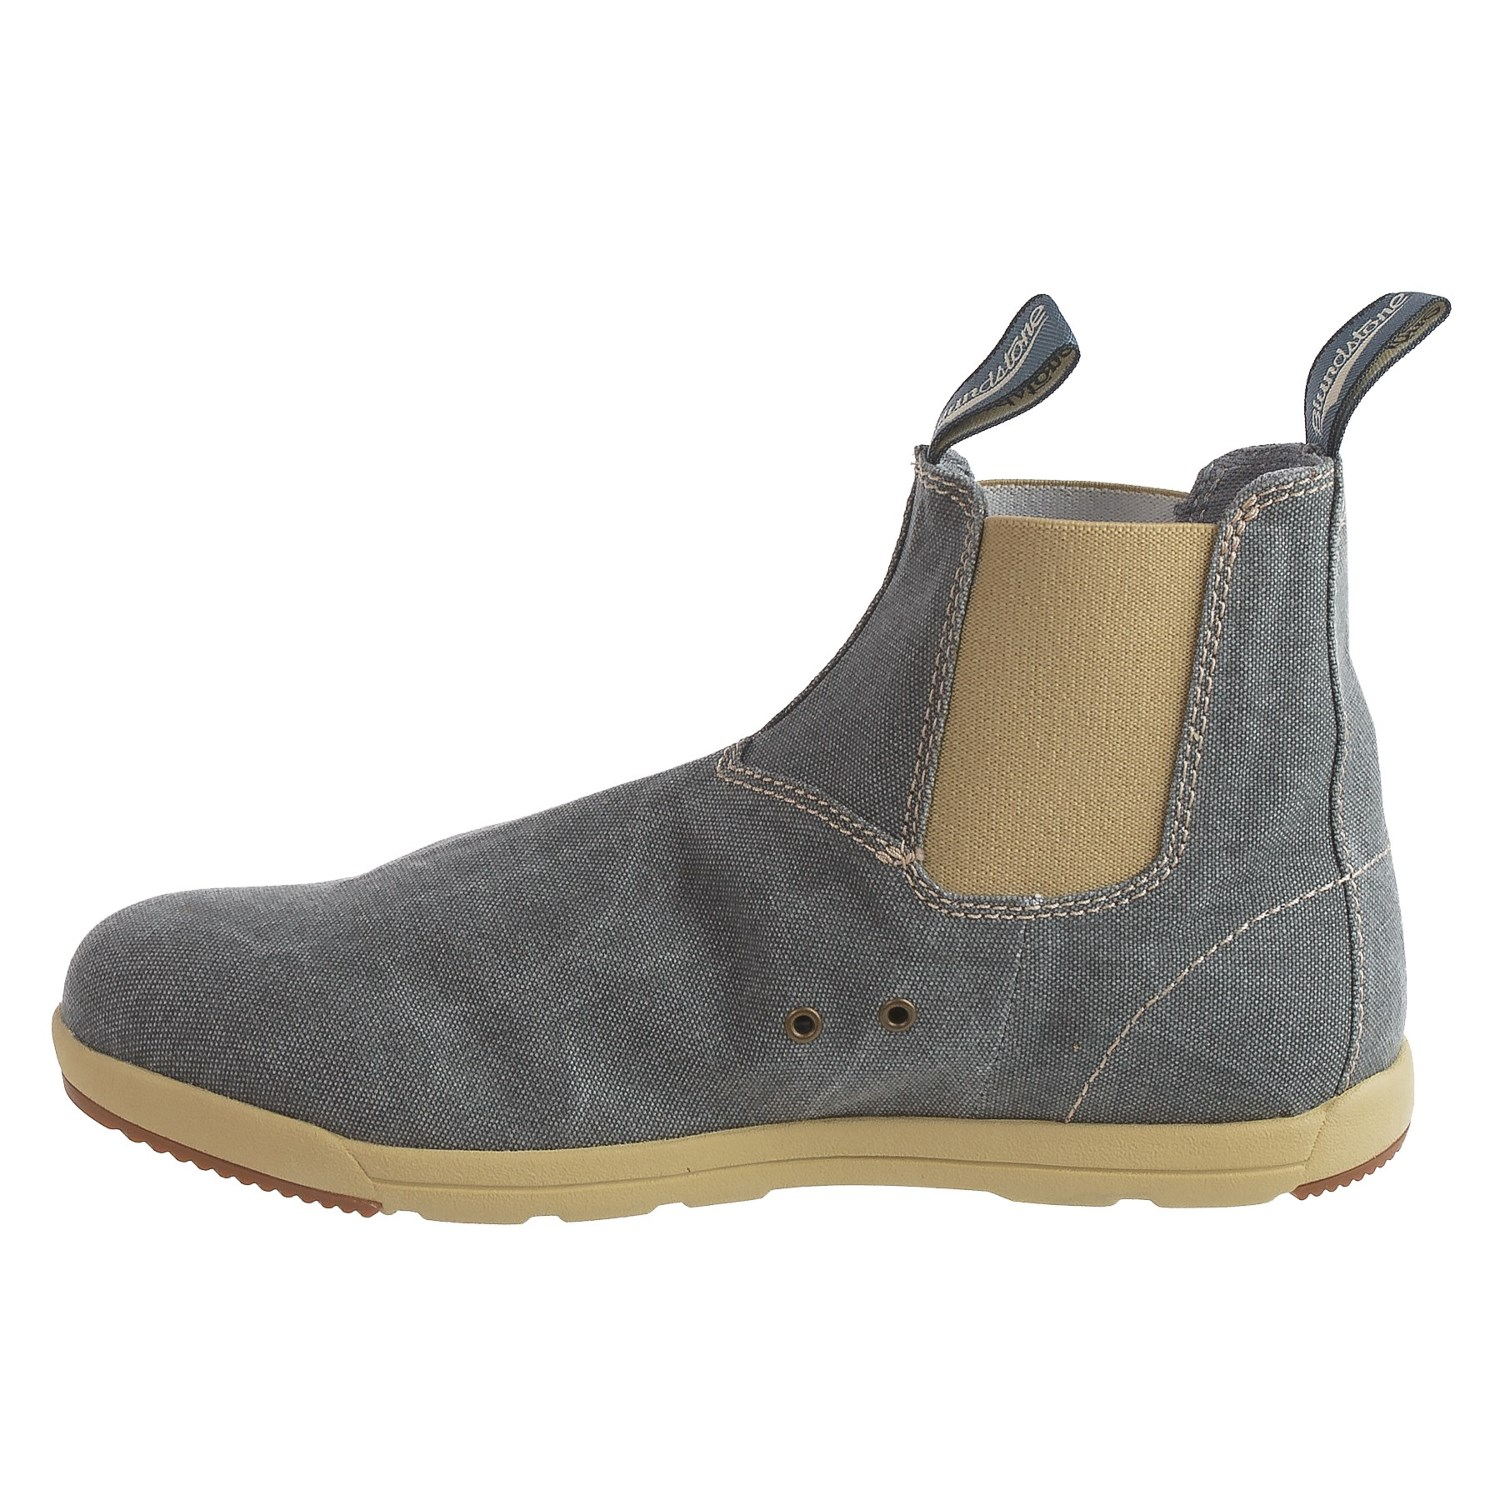 Innovative Blundstone 1441 Pull On Chelsea Boot Women Navy Hole Punch Leather | Blundstone UK